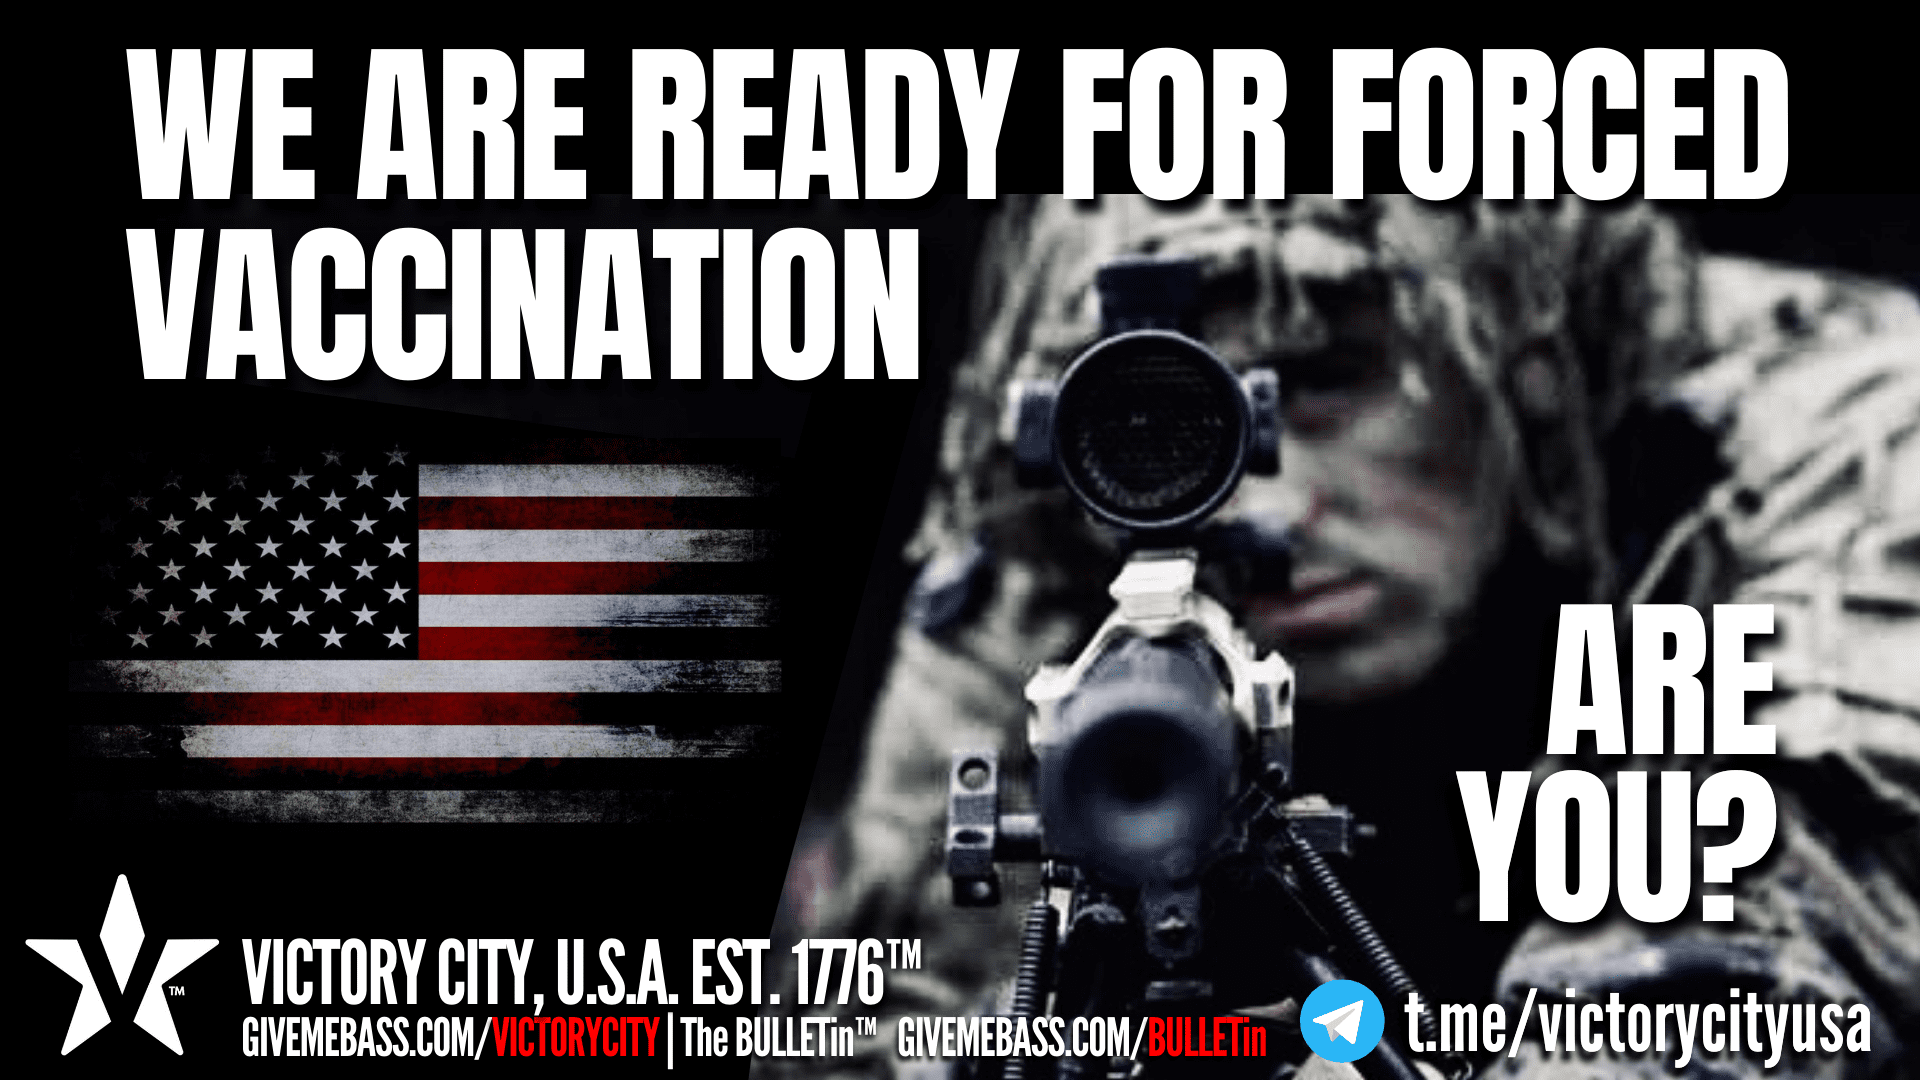 [MISSION CRITICAL VIDEO] We're Ready For FORCED VACCINATION. Are YOU?